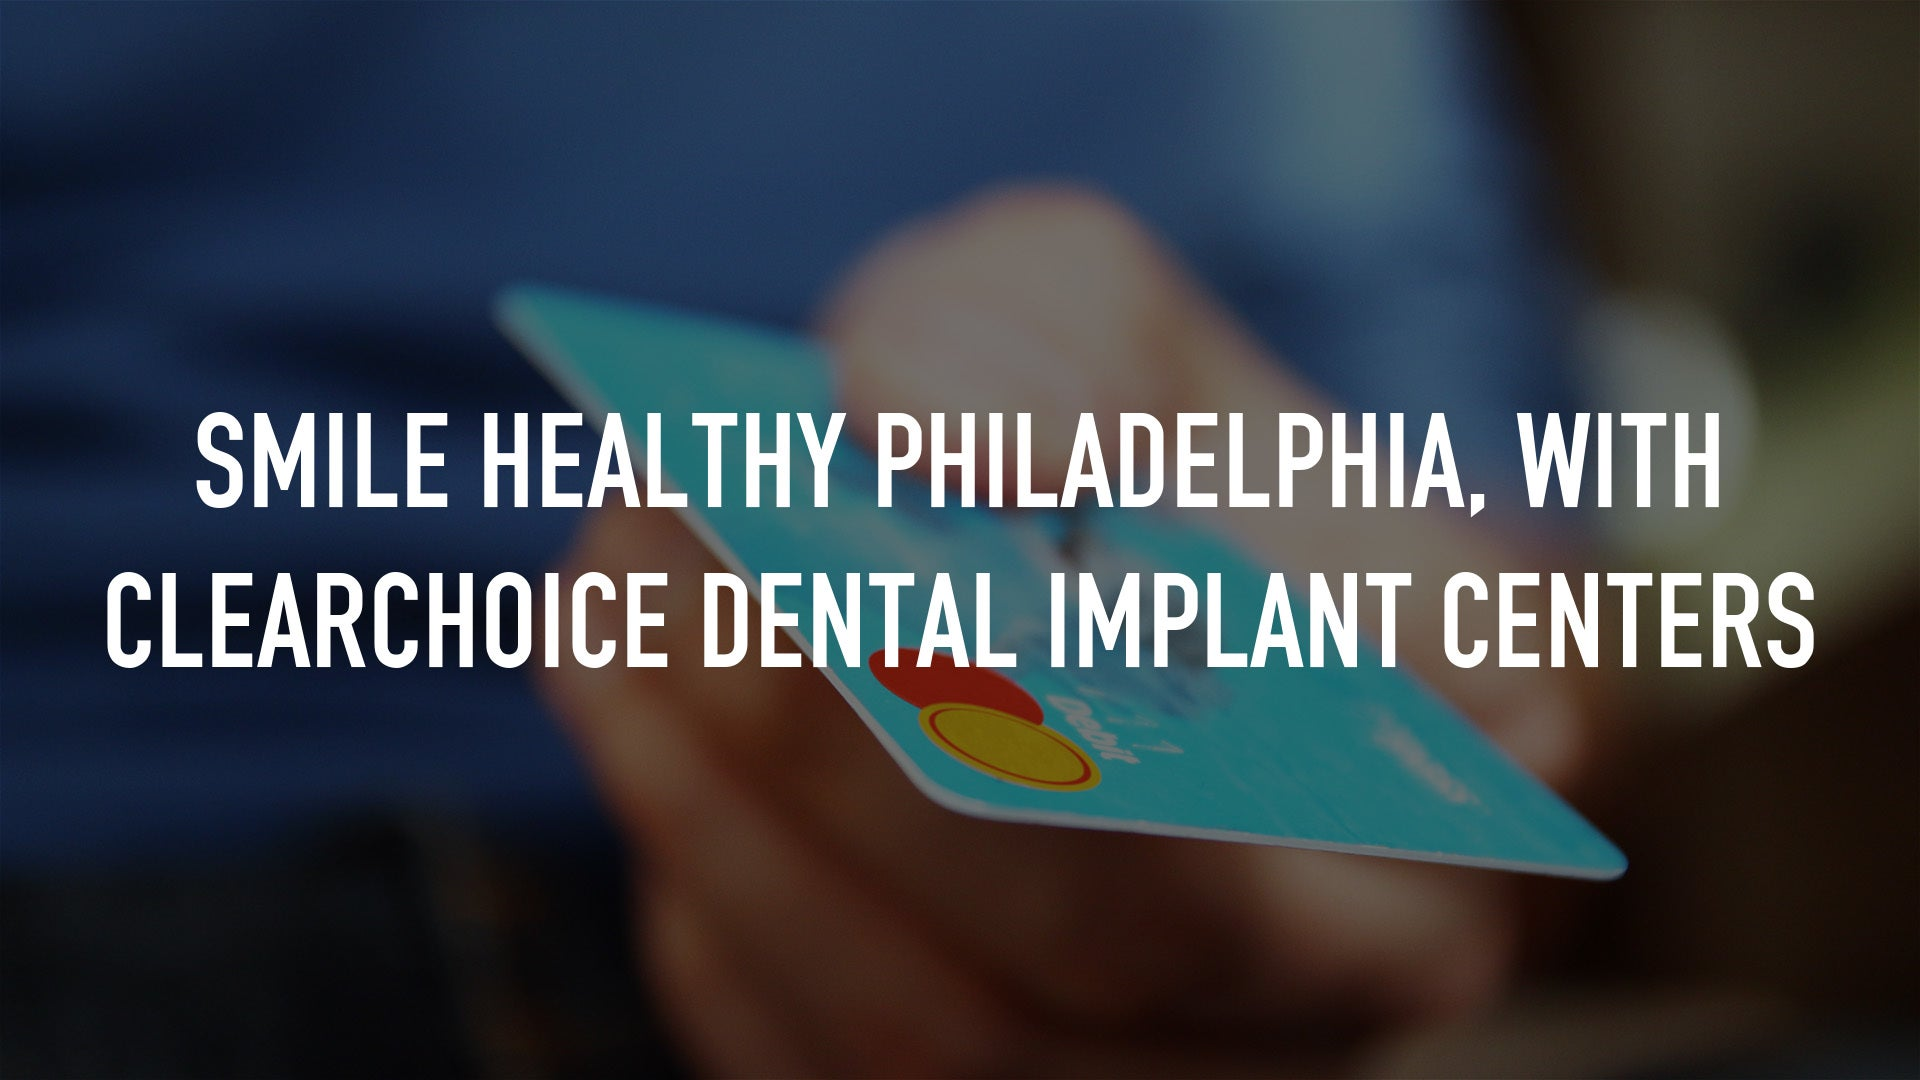 Smile Healthy Philadelphia, With ClearChoice Dental Implant Centers